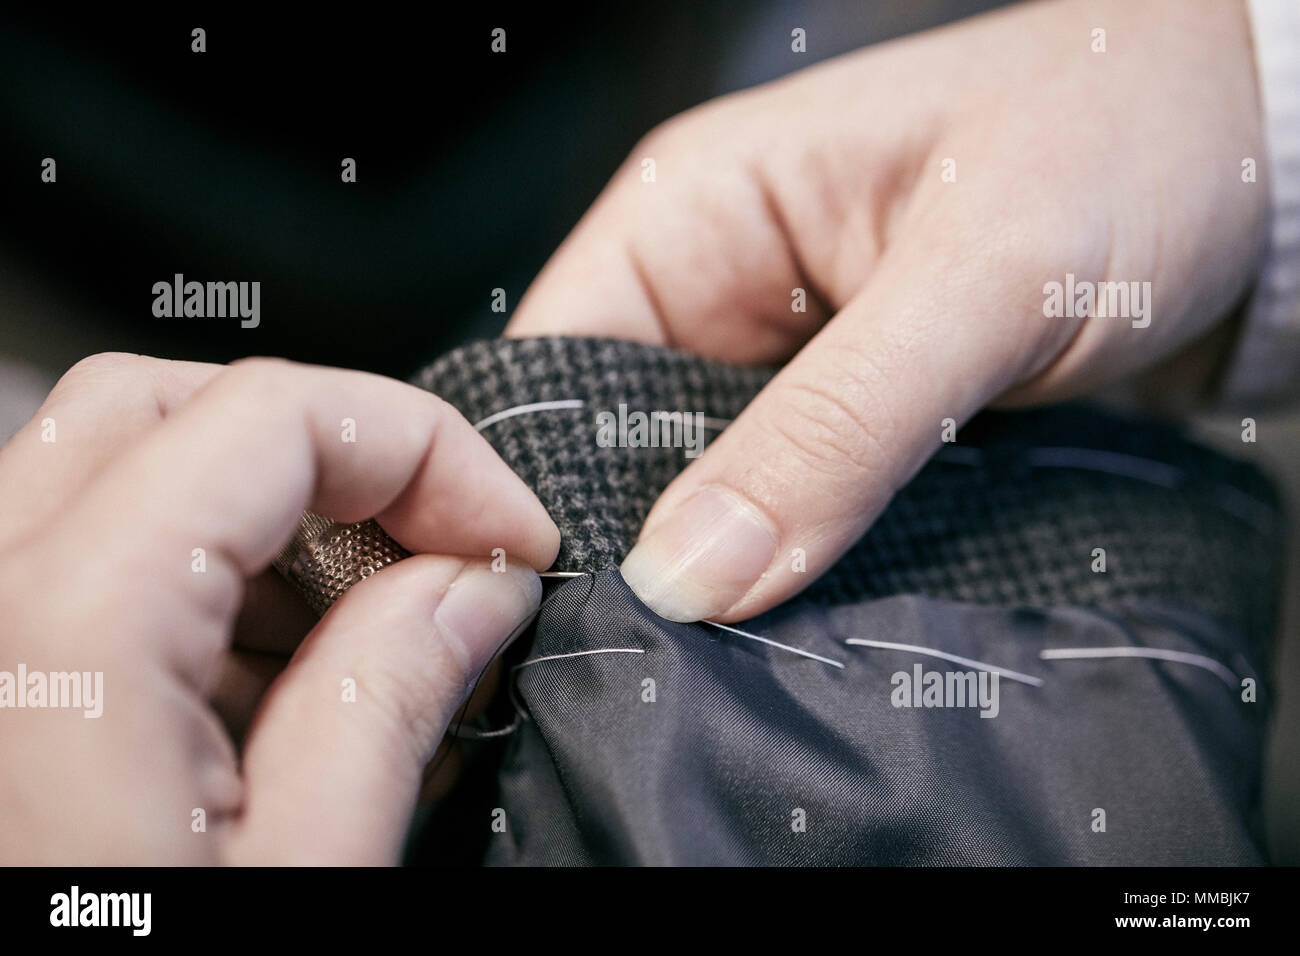 Sewing by hand using needle and thread - Stock Image